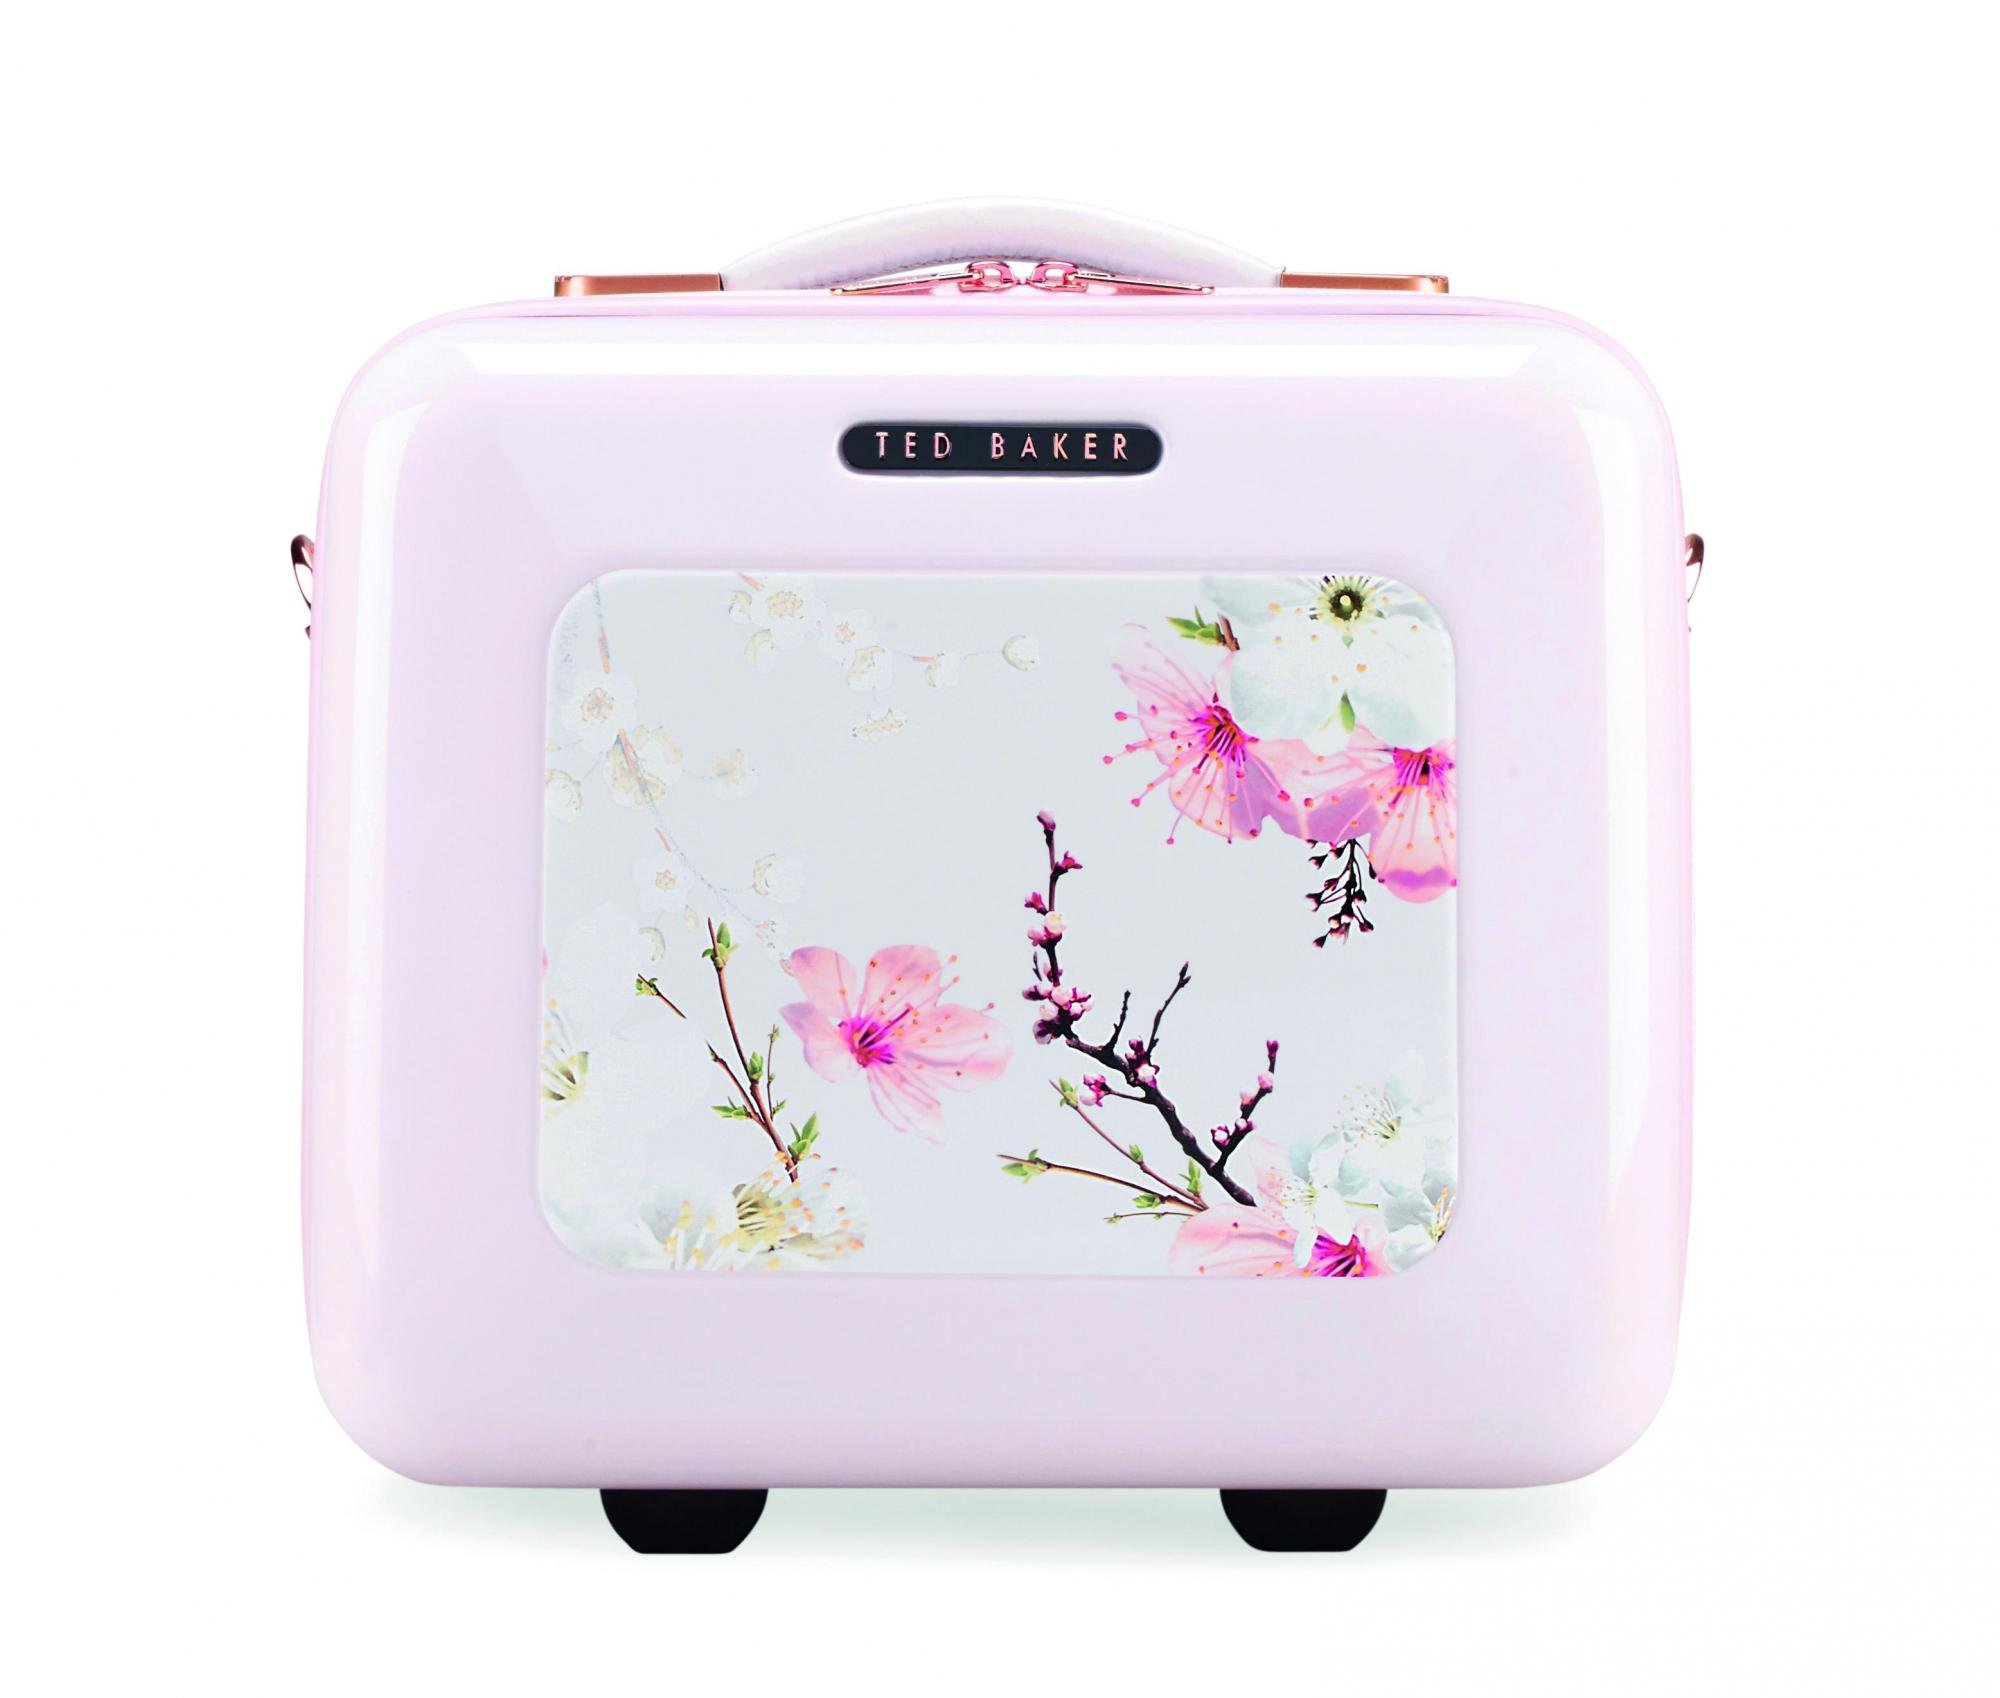 Ted Baker Oriental Blossom Vanity Case by Ted Baker